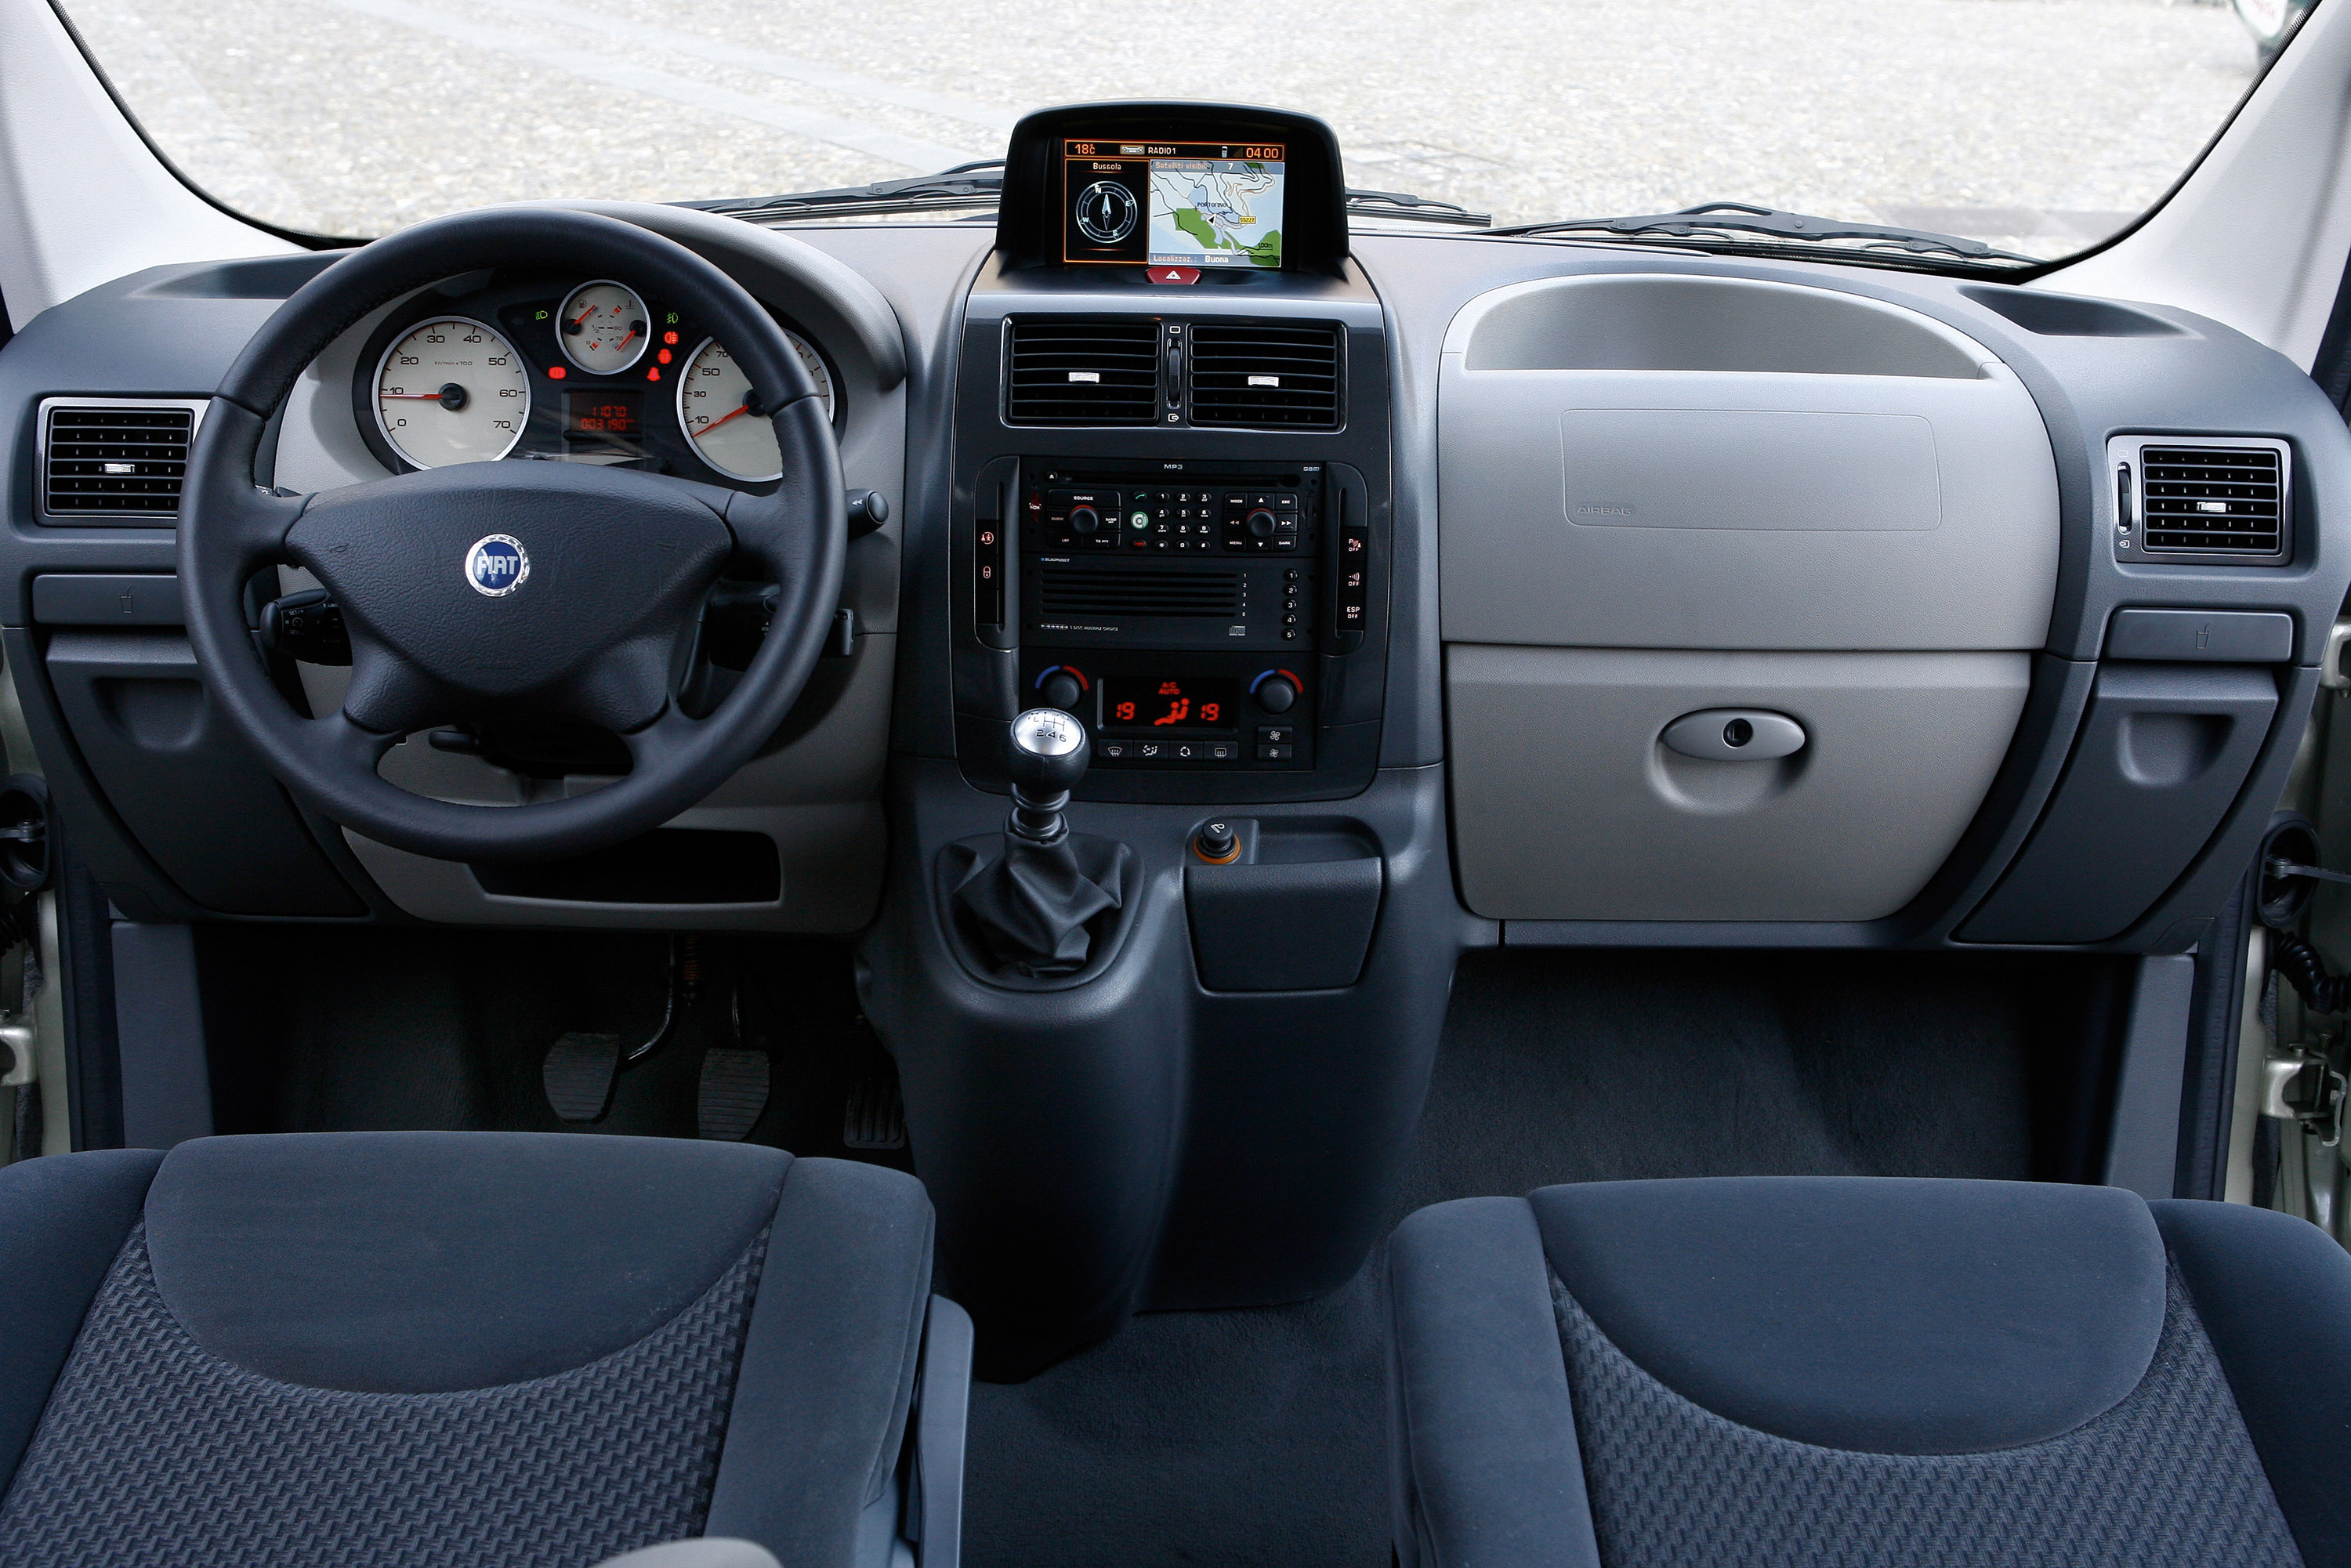 previa amazing gallery fiat information seater and some toyota photo